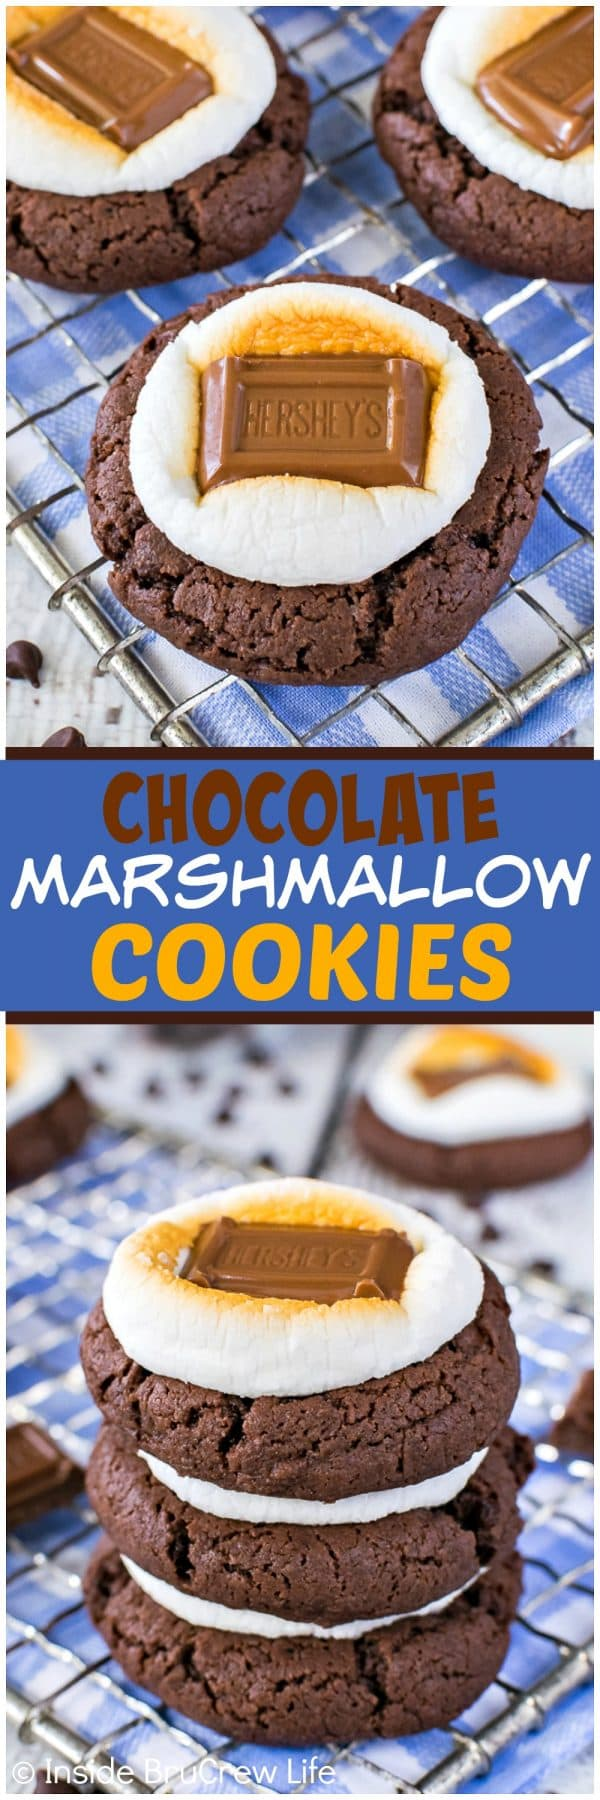 Easy Chocolate Marshmallow Cookies - toasted marshmallows and candy bars add a fun summer flair to these cookies. Great recipe for picnics or parties!